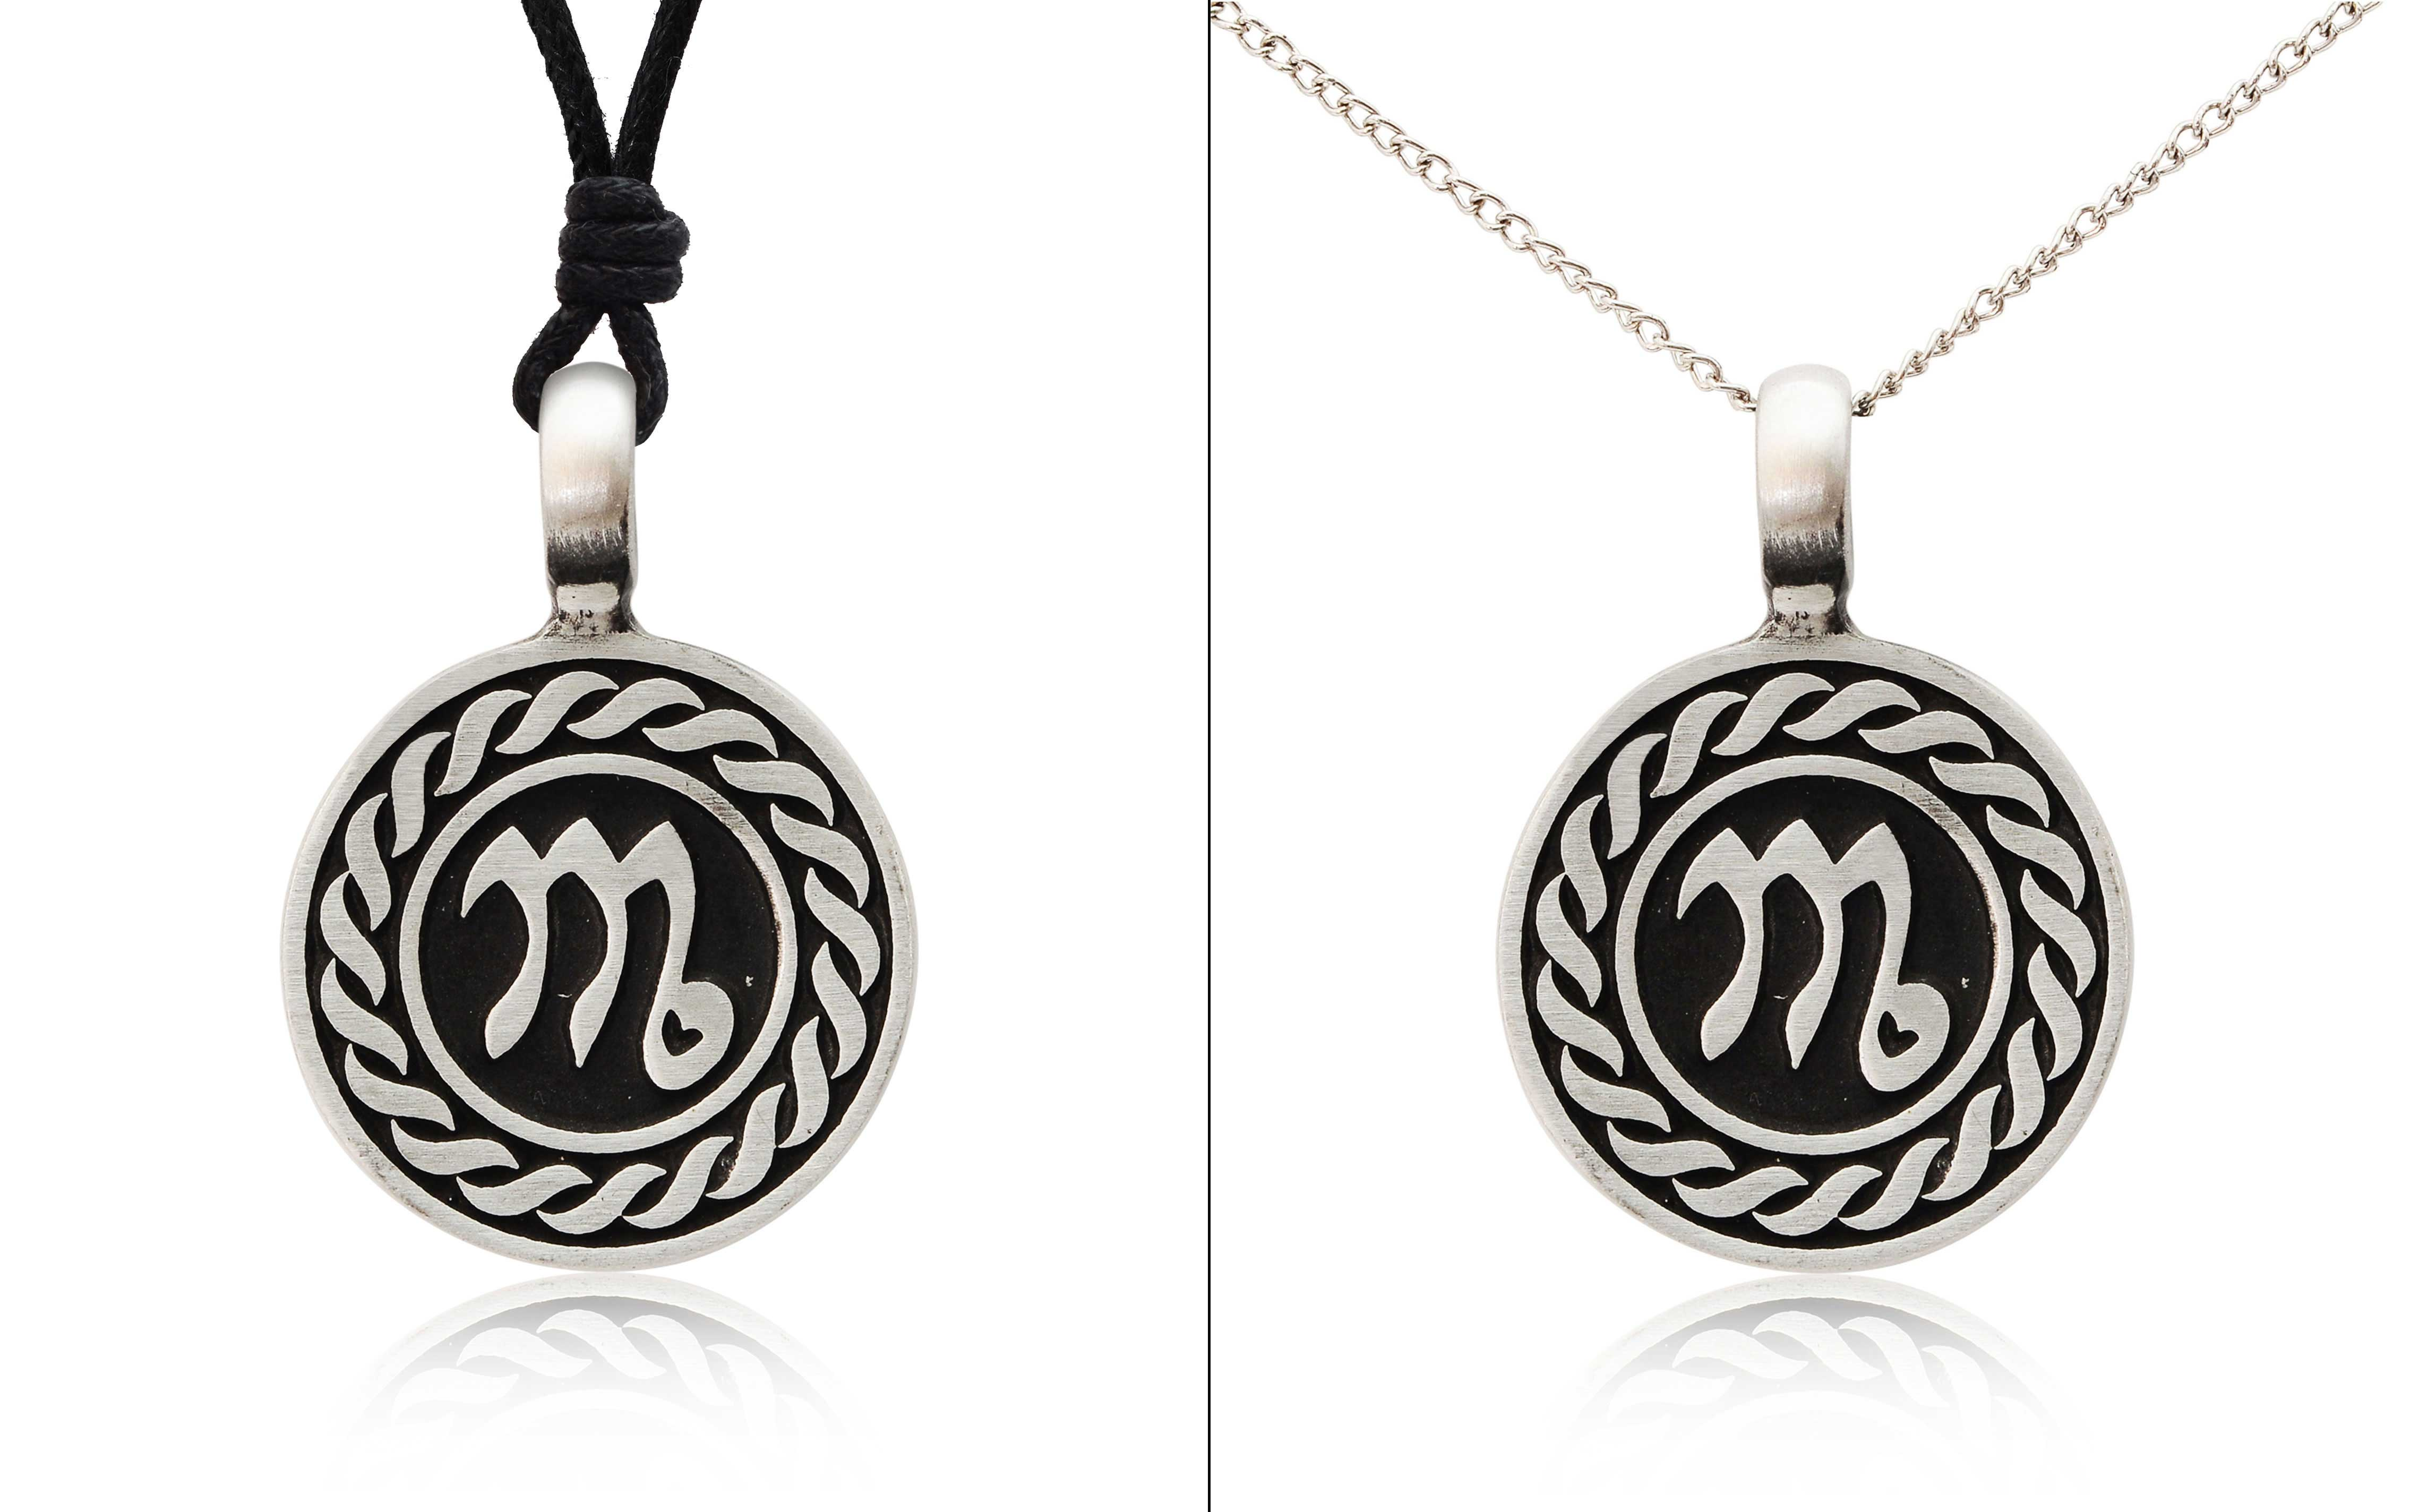 Astrology Sign Horoscope Silver Pewter Charm Necklace ... - photo#21